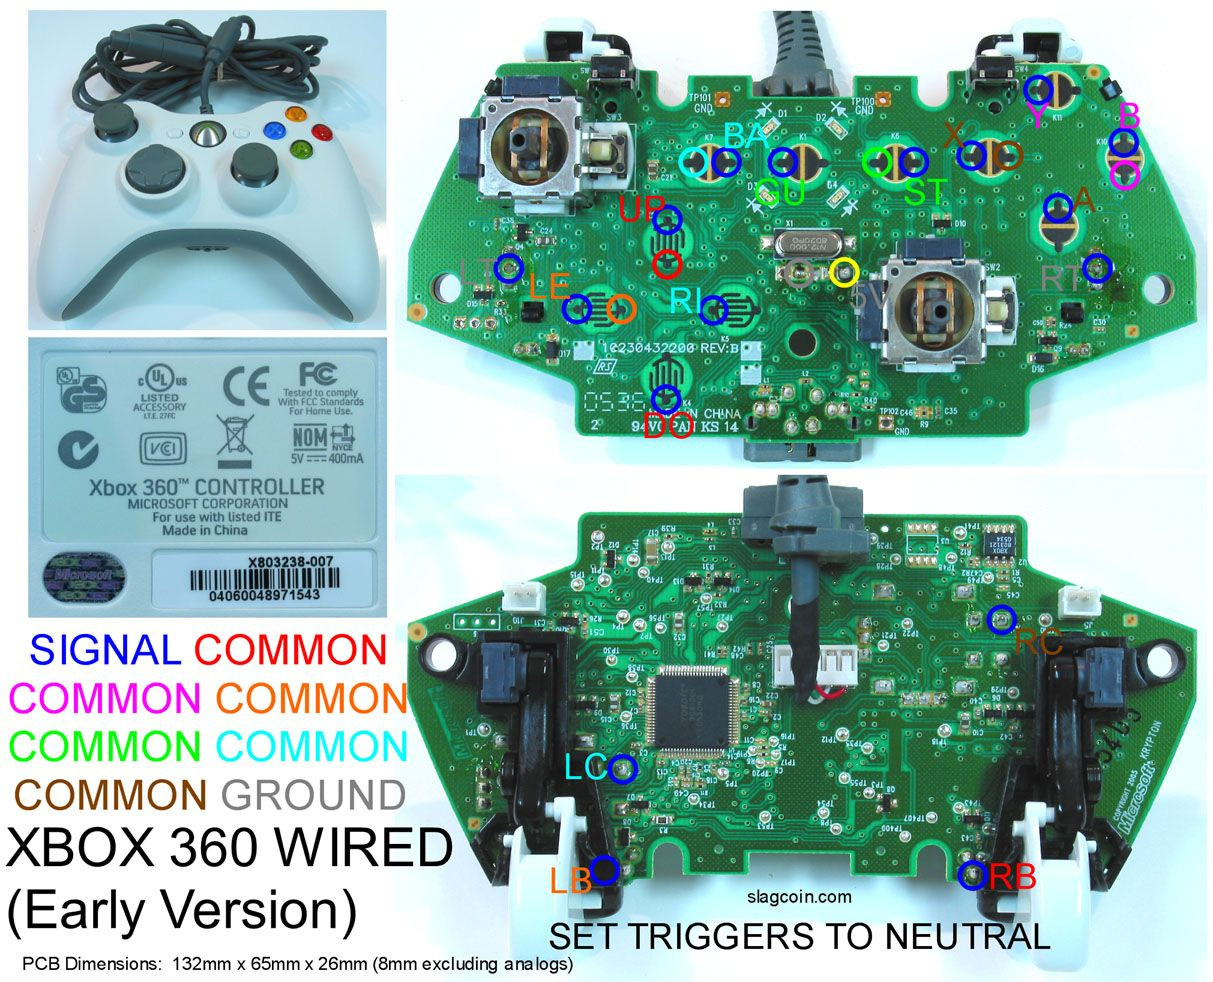 Gaming Gadgets And Mods Xbox 360 And Original Xbox Controller Pcb Diagrams For Mods Or Making Your Own Joystick Xbox Xbox 360 Xbox Controller